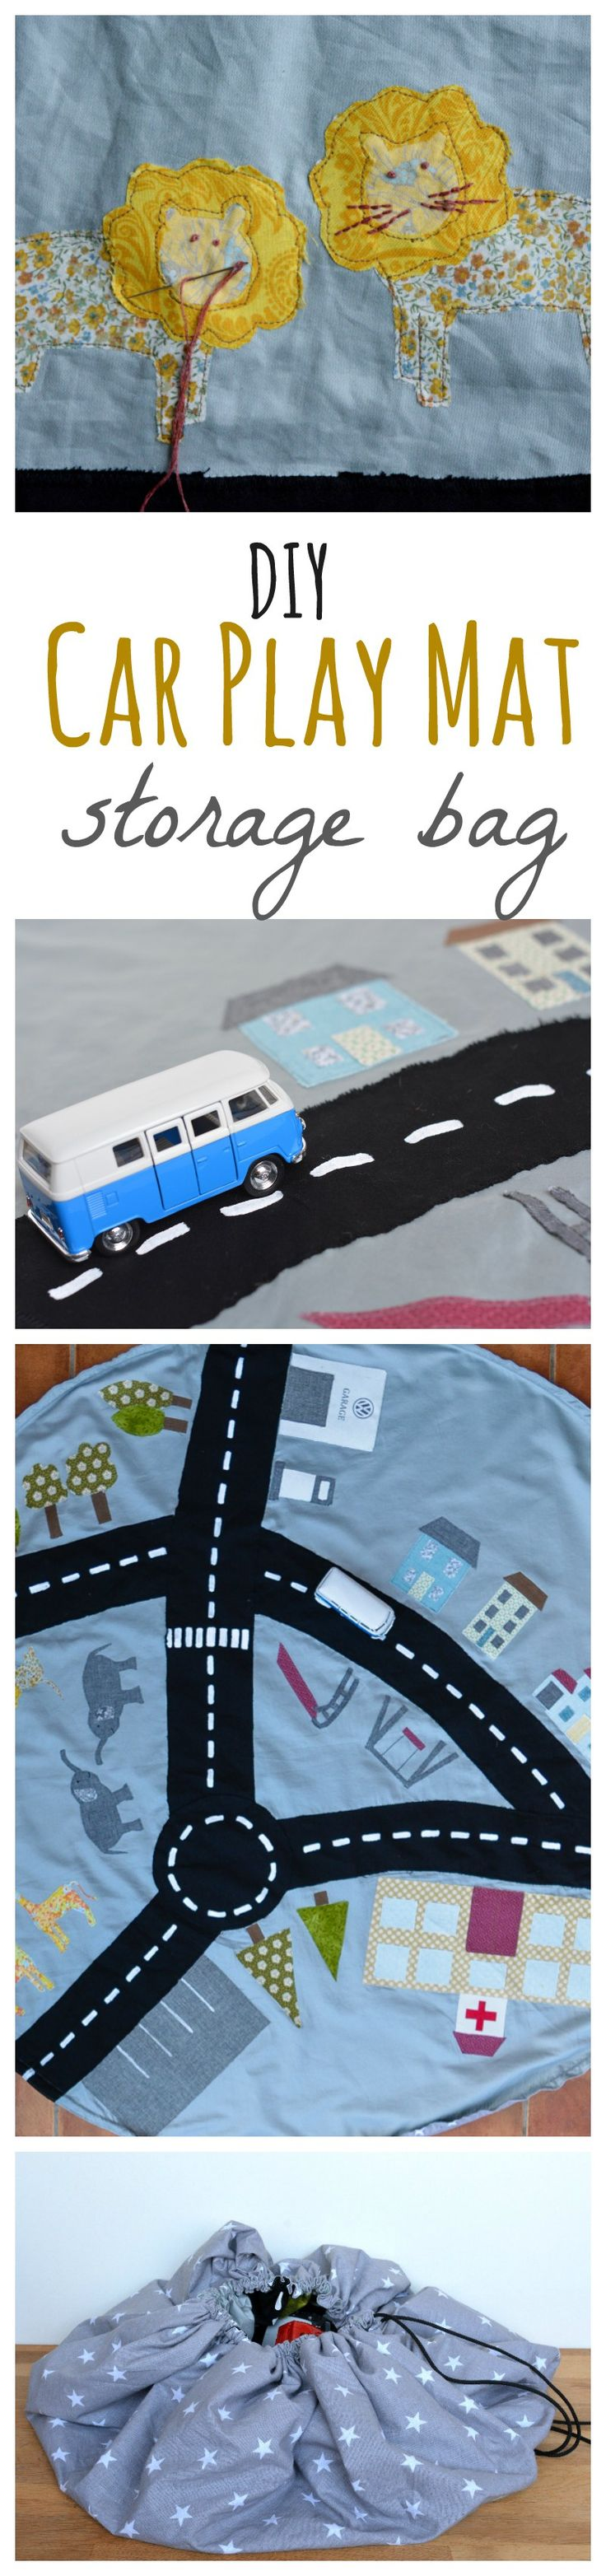 Have children who love playing with cars? This DIY car play mat doubles as a drawstring storage bag, perfect for a quick tidy up. Free templates on the blog